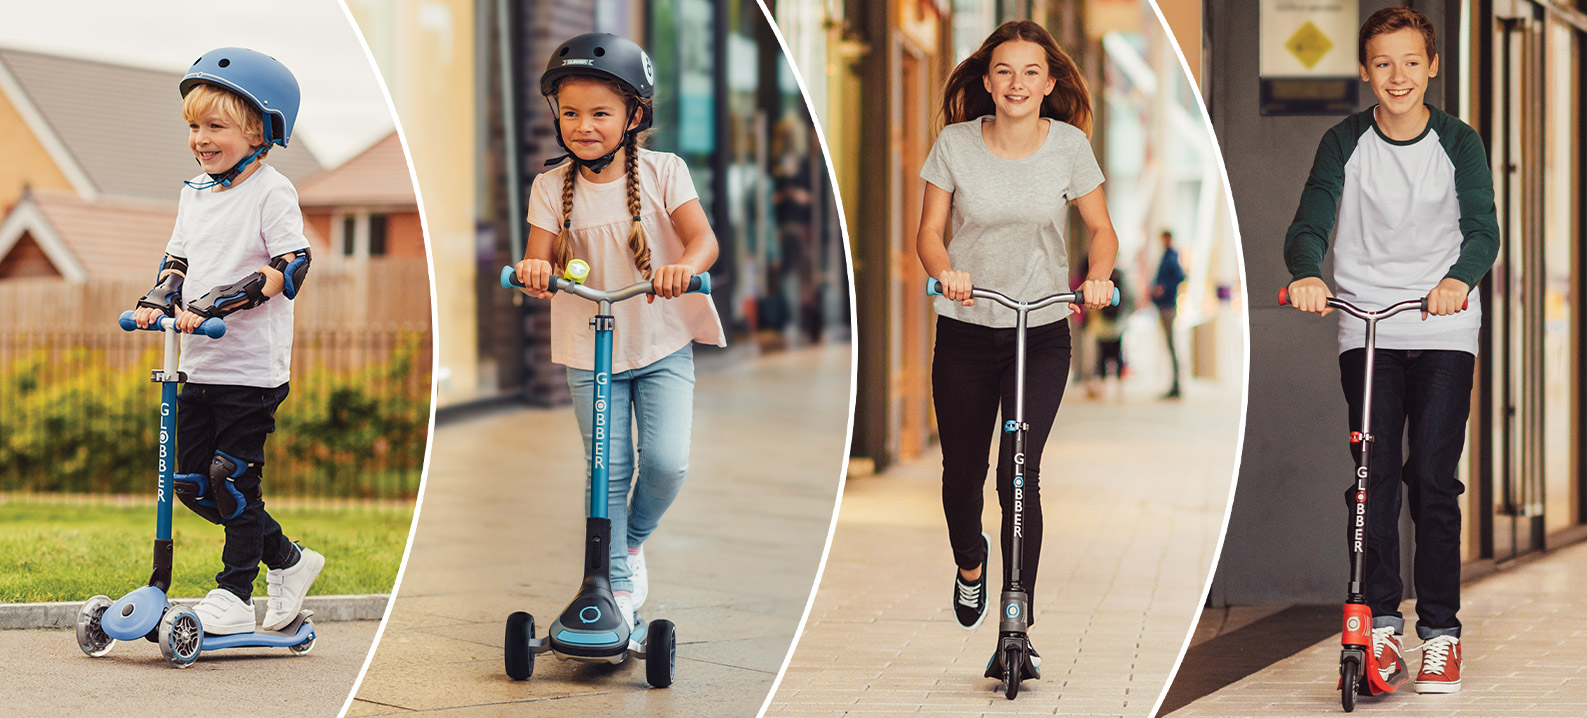 Top 7 Best Globber Scooters